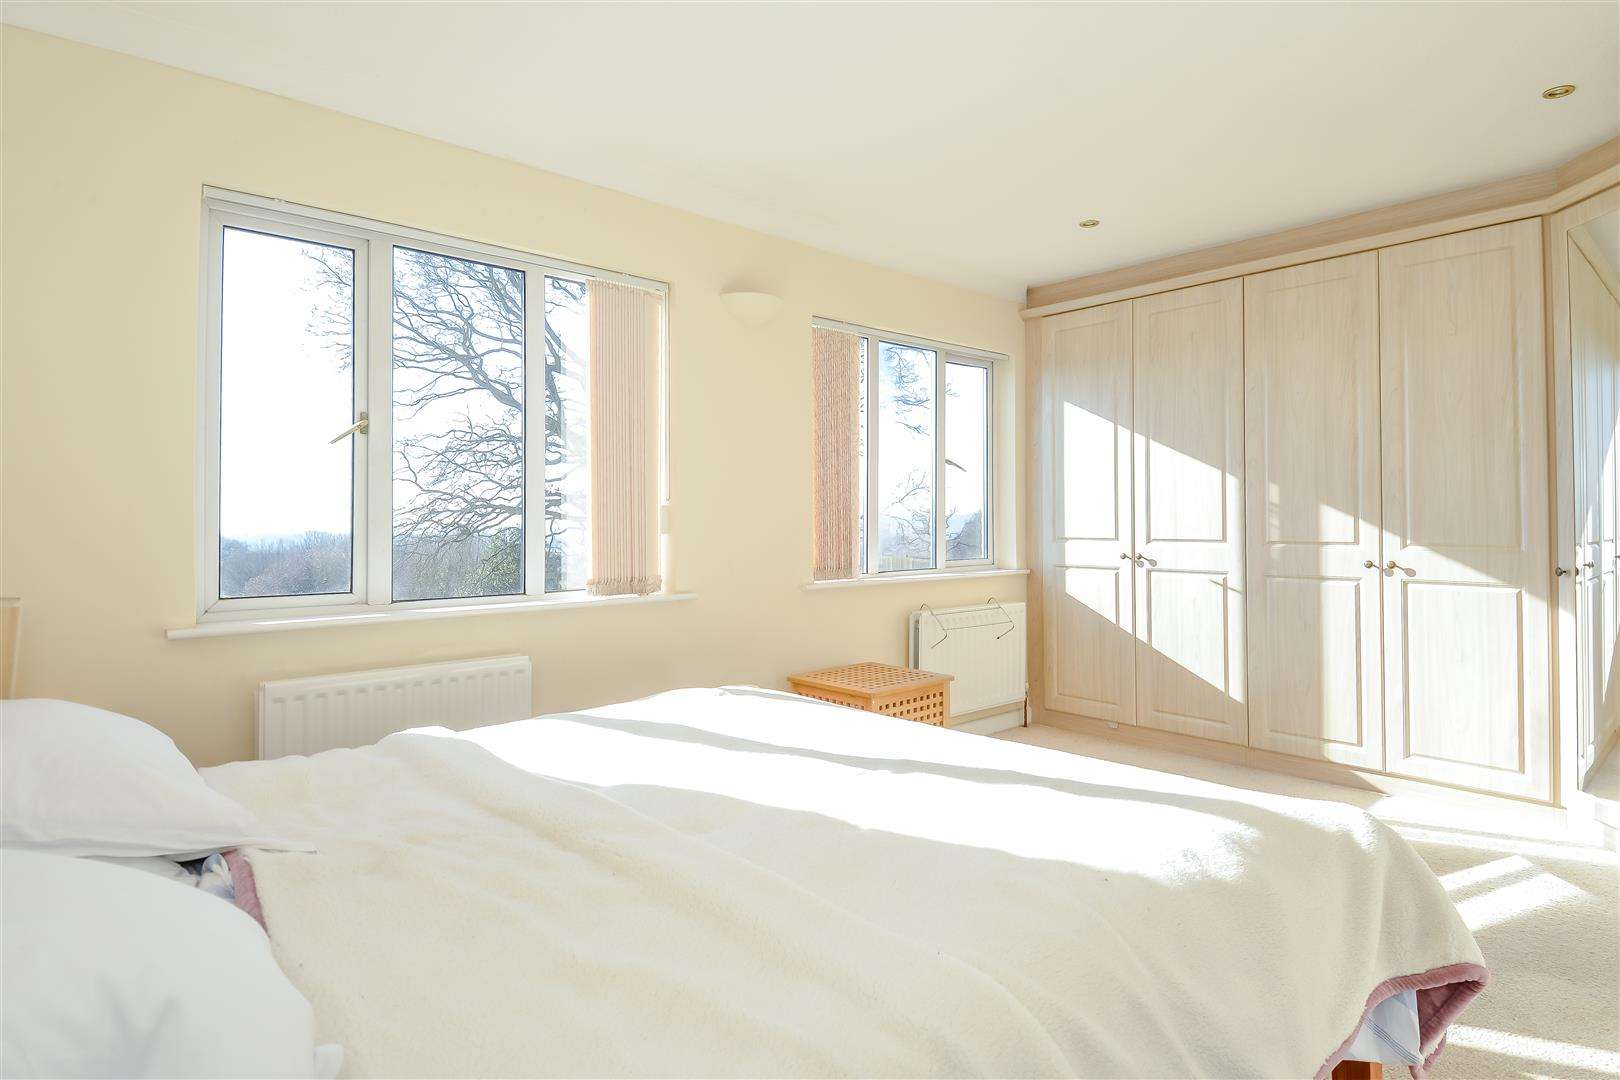 4 bed for sale in Merry Hill Road, Bushey - (Property Image 7)